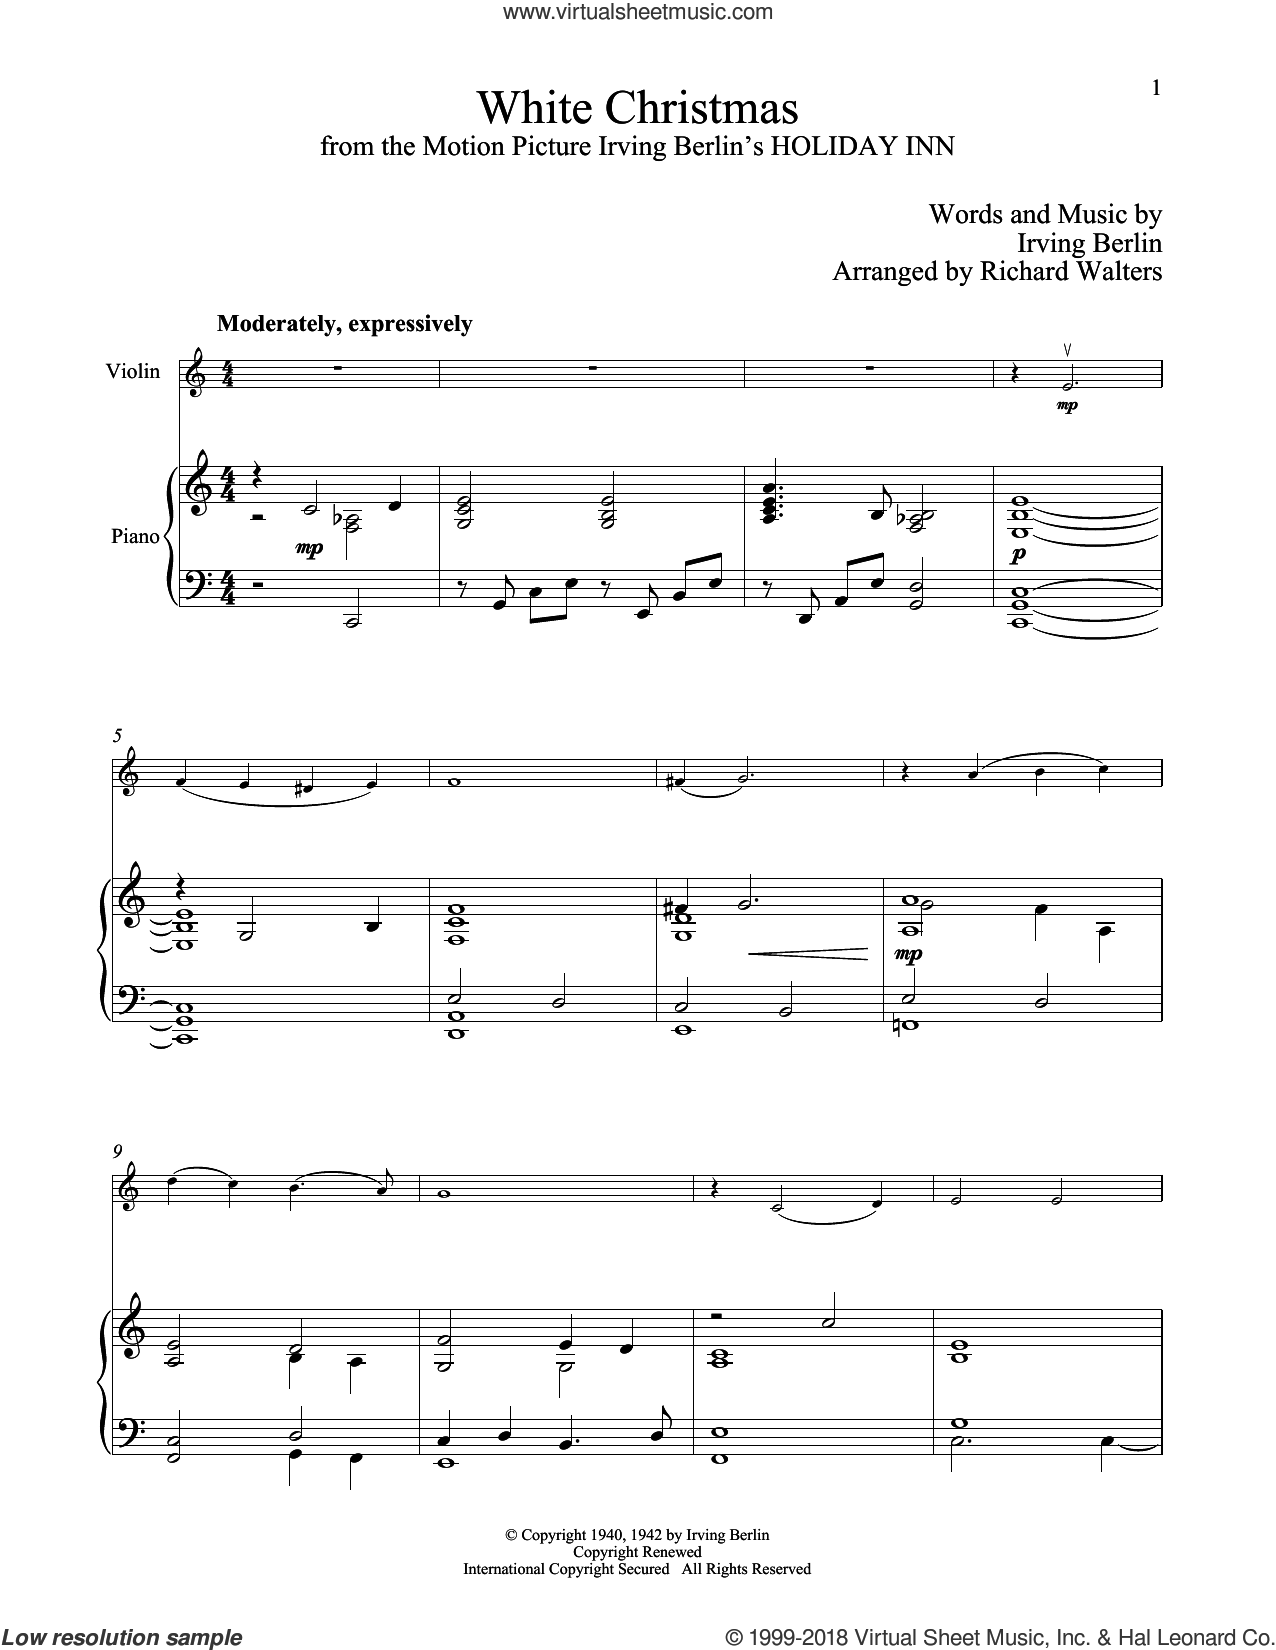 Berlin White Christmas sheet music for violin and piano